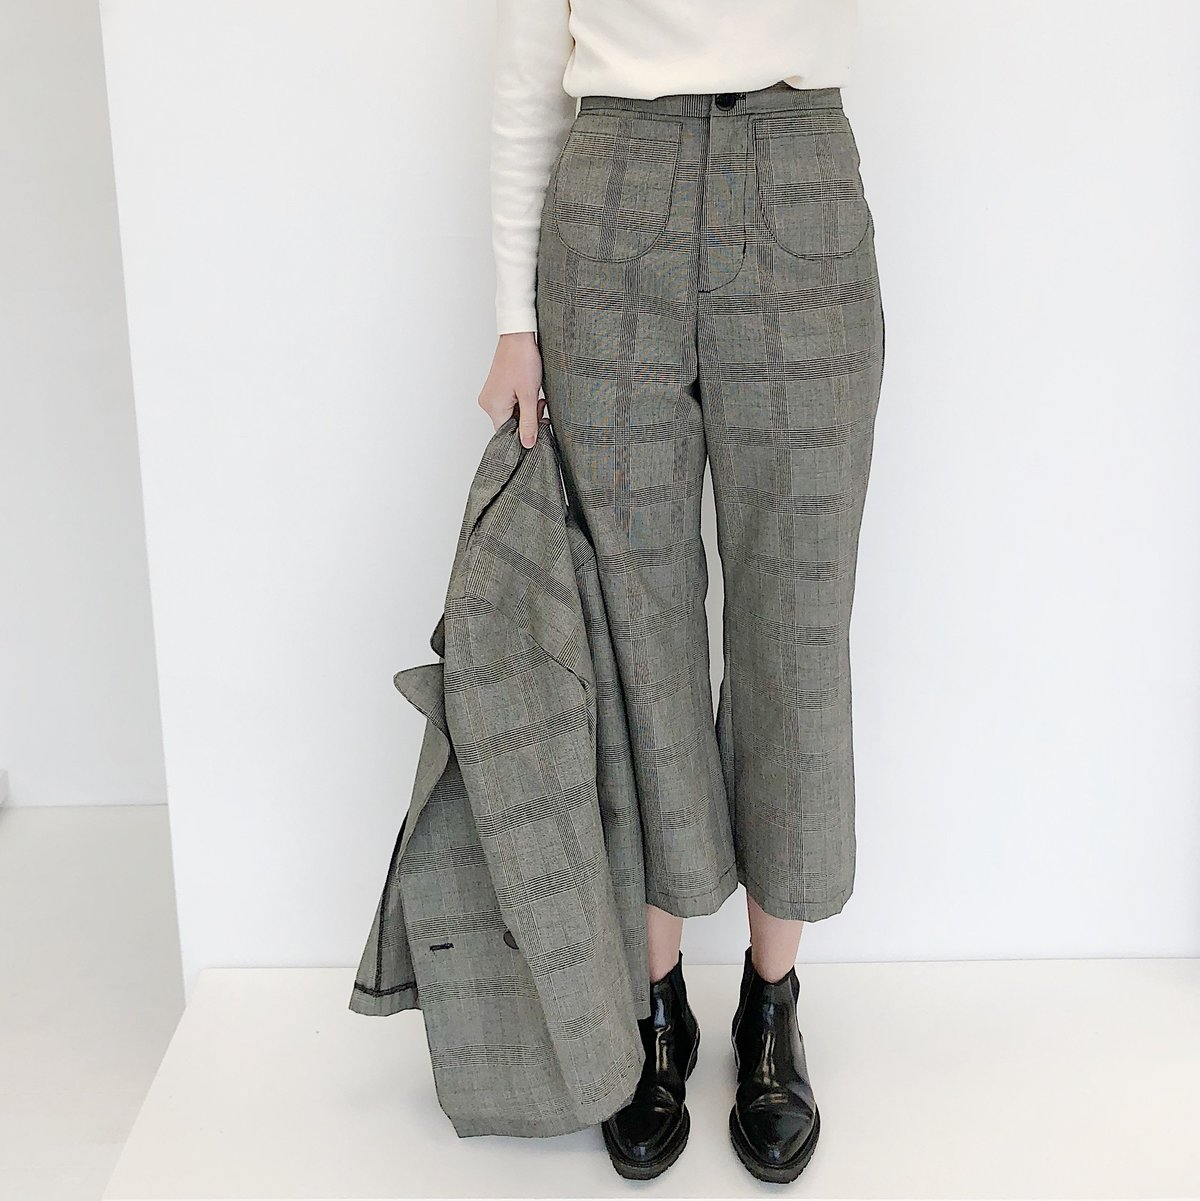 Laurs Kemp Glen Plaid Cassidy Pant $280